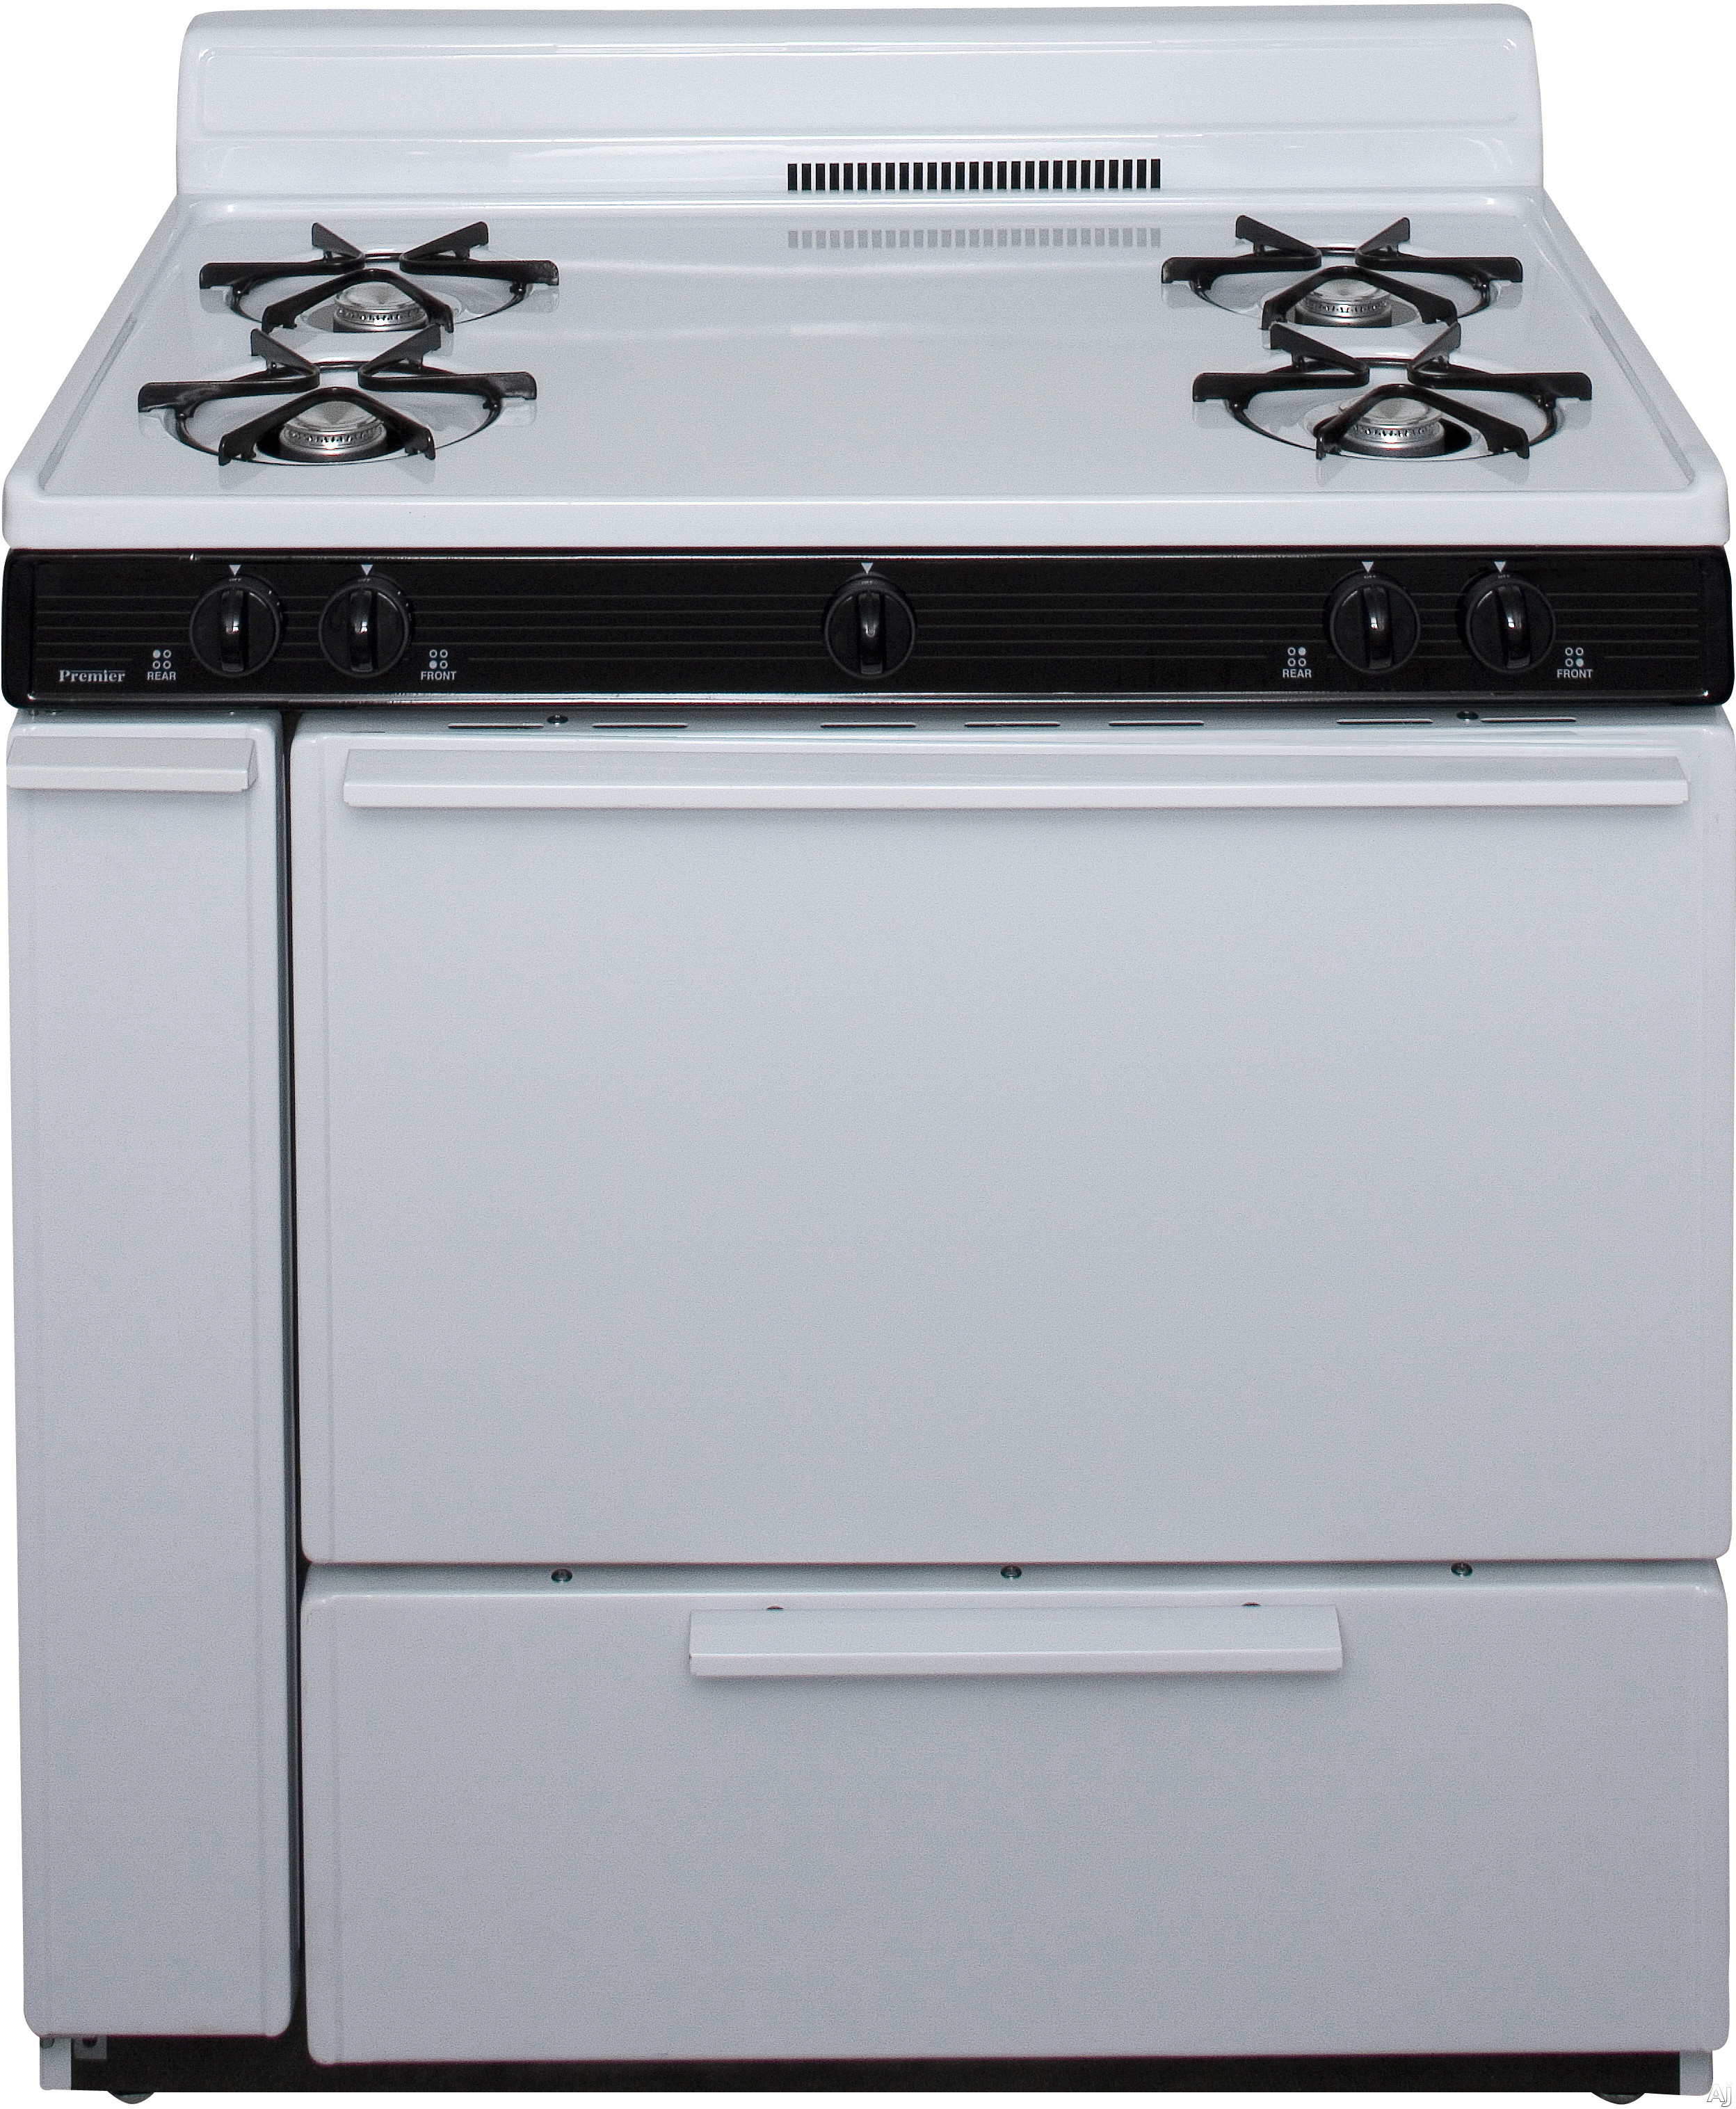 Premier SLK100W 36 Inch Freestanding Gas Range with 4 Open Burners, 3.9 cu. ft. Manual Clean Oven, Electronic Ignition, Solid Oven Door and 4 Inch Porcelain Backguard: White with Black Trim